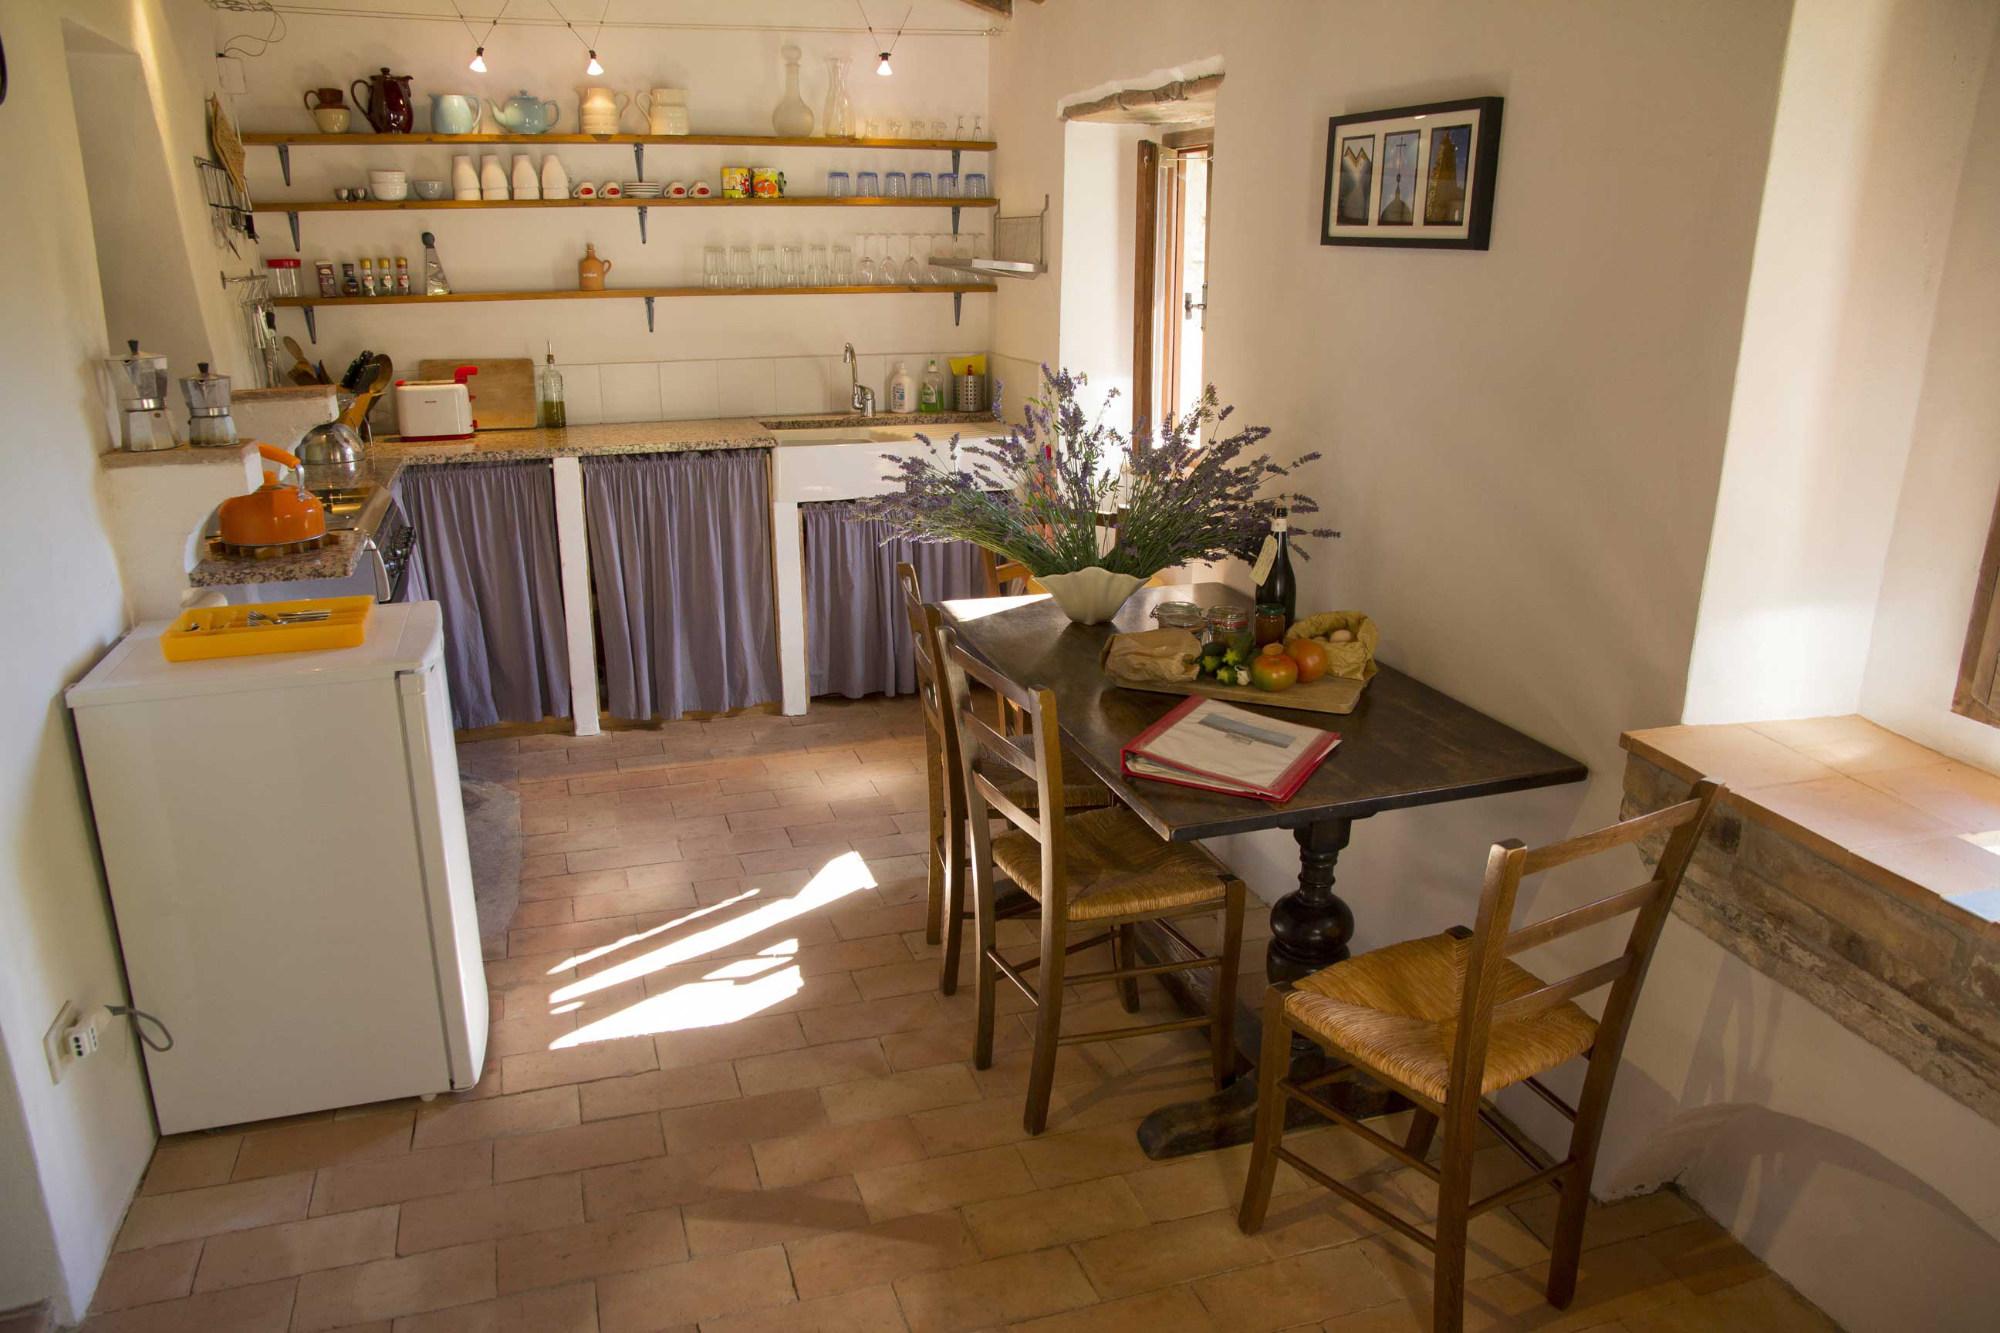 palomba kitchen